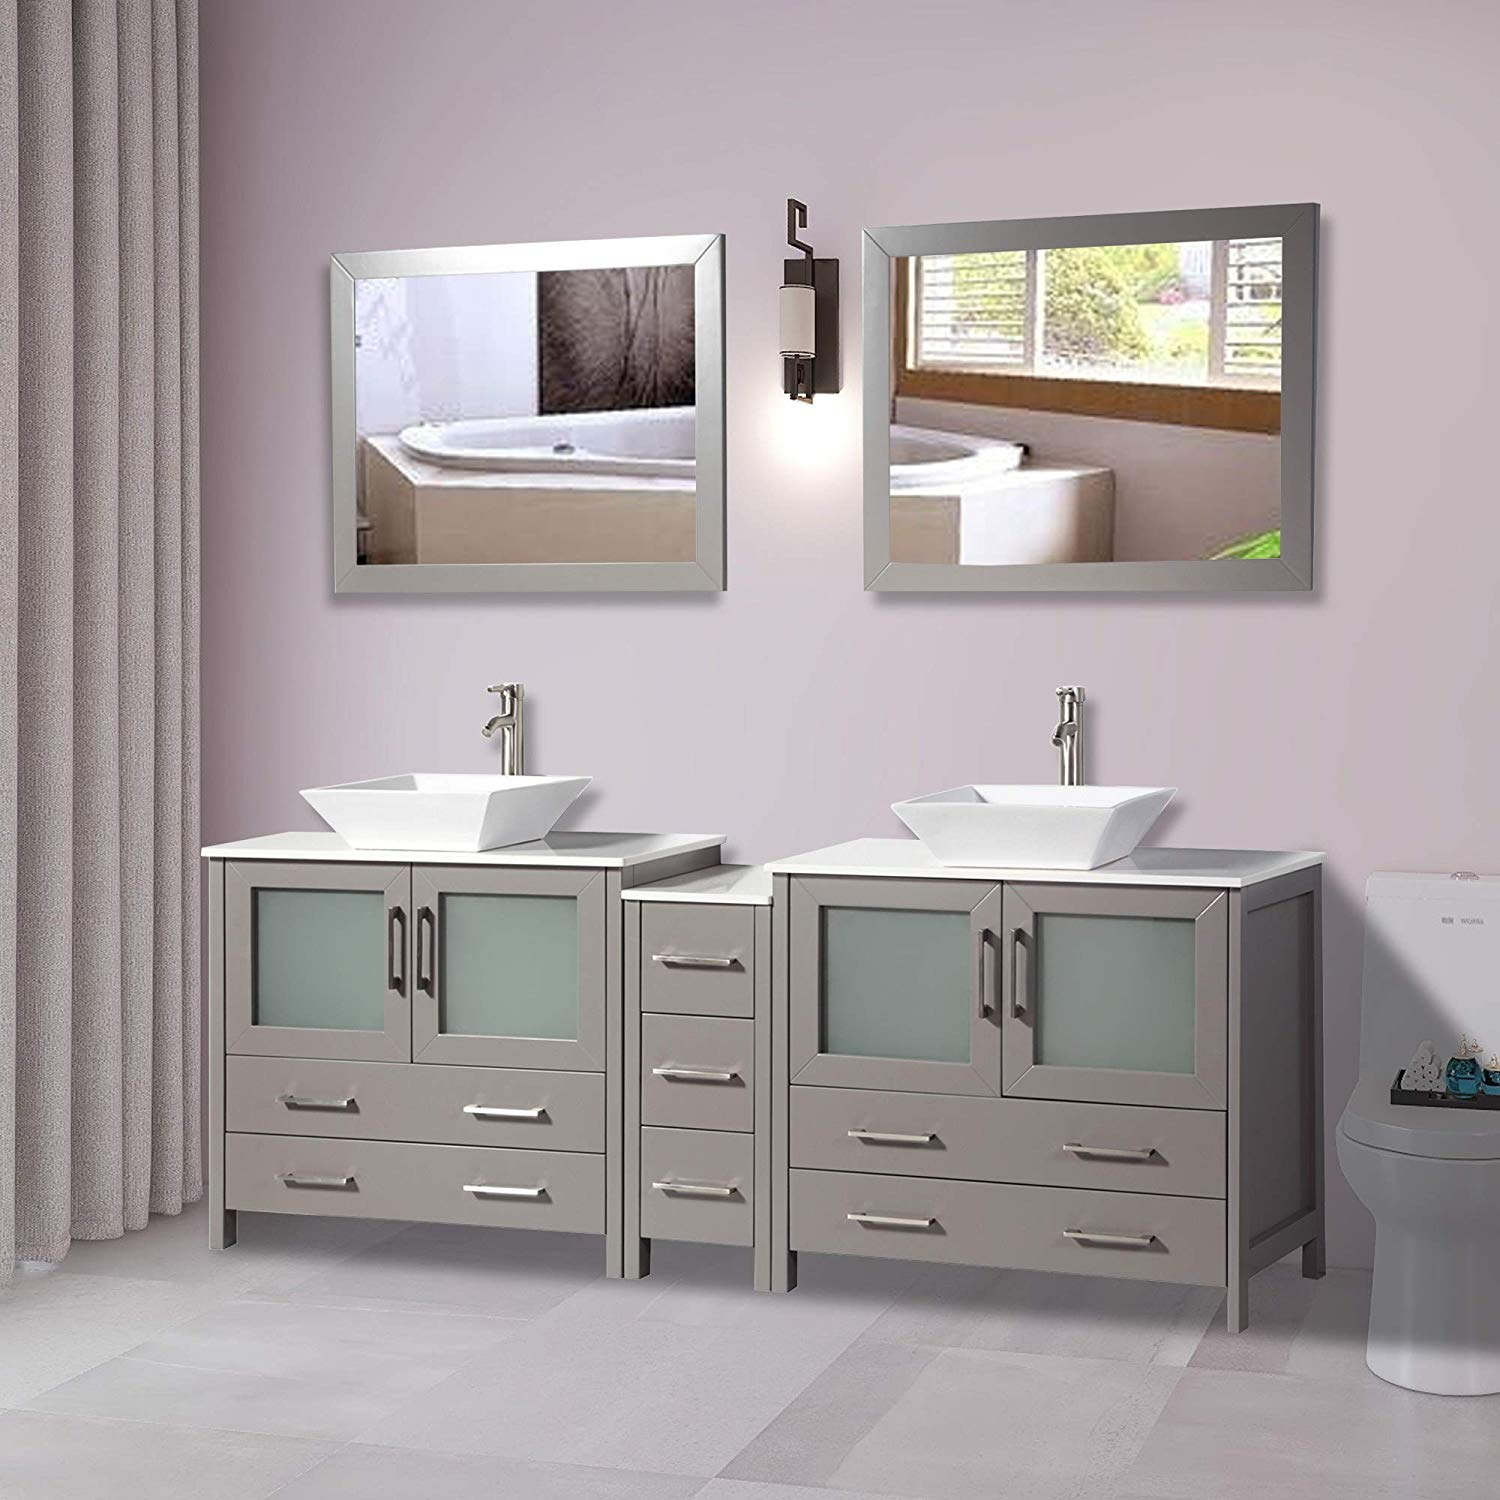 Vanity Art 84 Inches Double Sink Bathroom Vanity Compact Set 3 Cabinets 2 Shelves 7 Drawers Quartz Top And Ceramic Vessel Sink Bathroom Cabinet With Free Mirror Va3136 84g Walmart Com Walmart Com